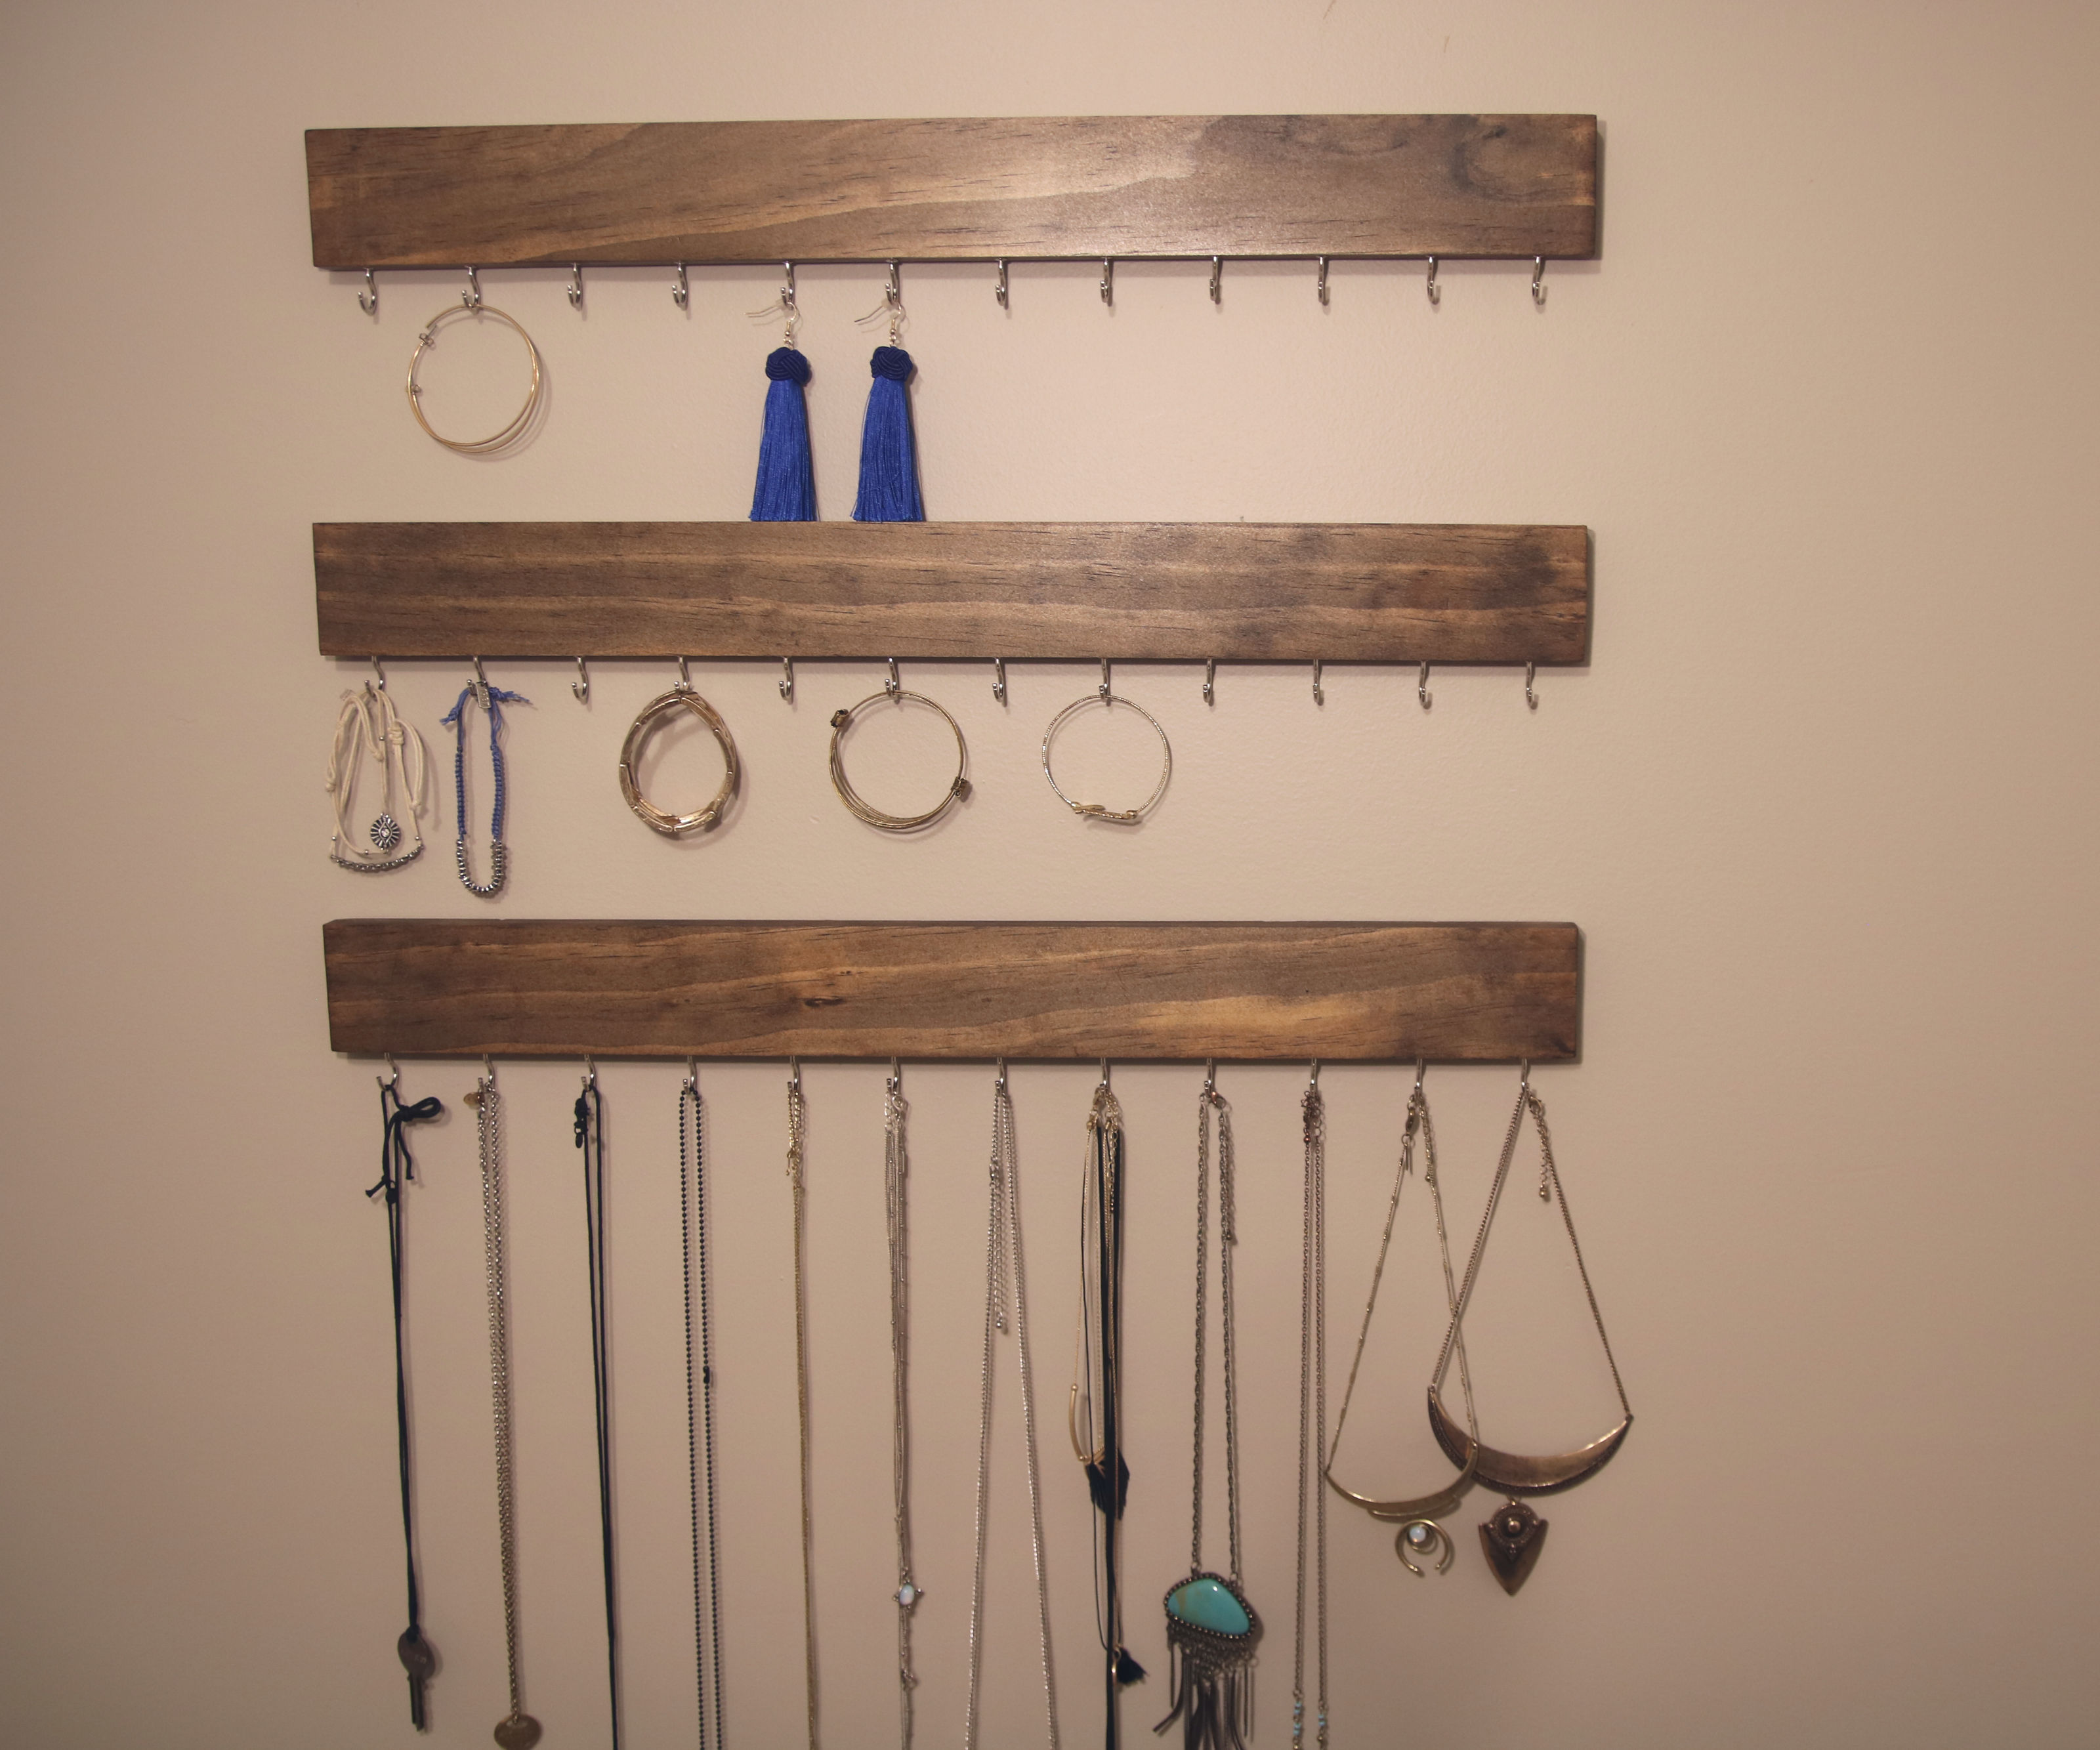 How to Make a Simple Jewelry Hanger